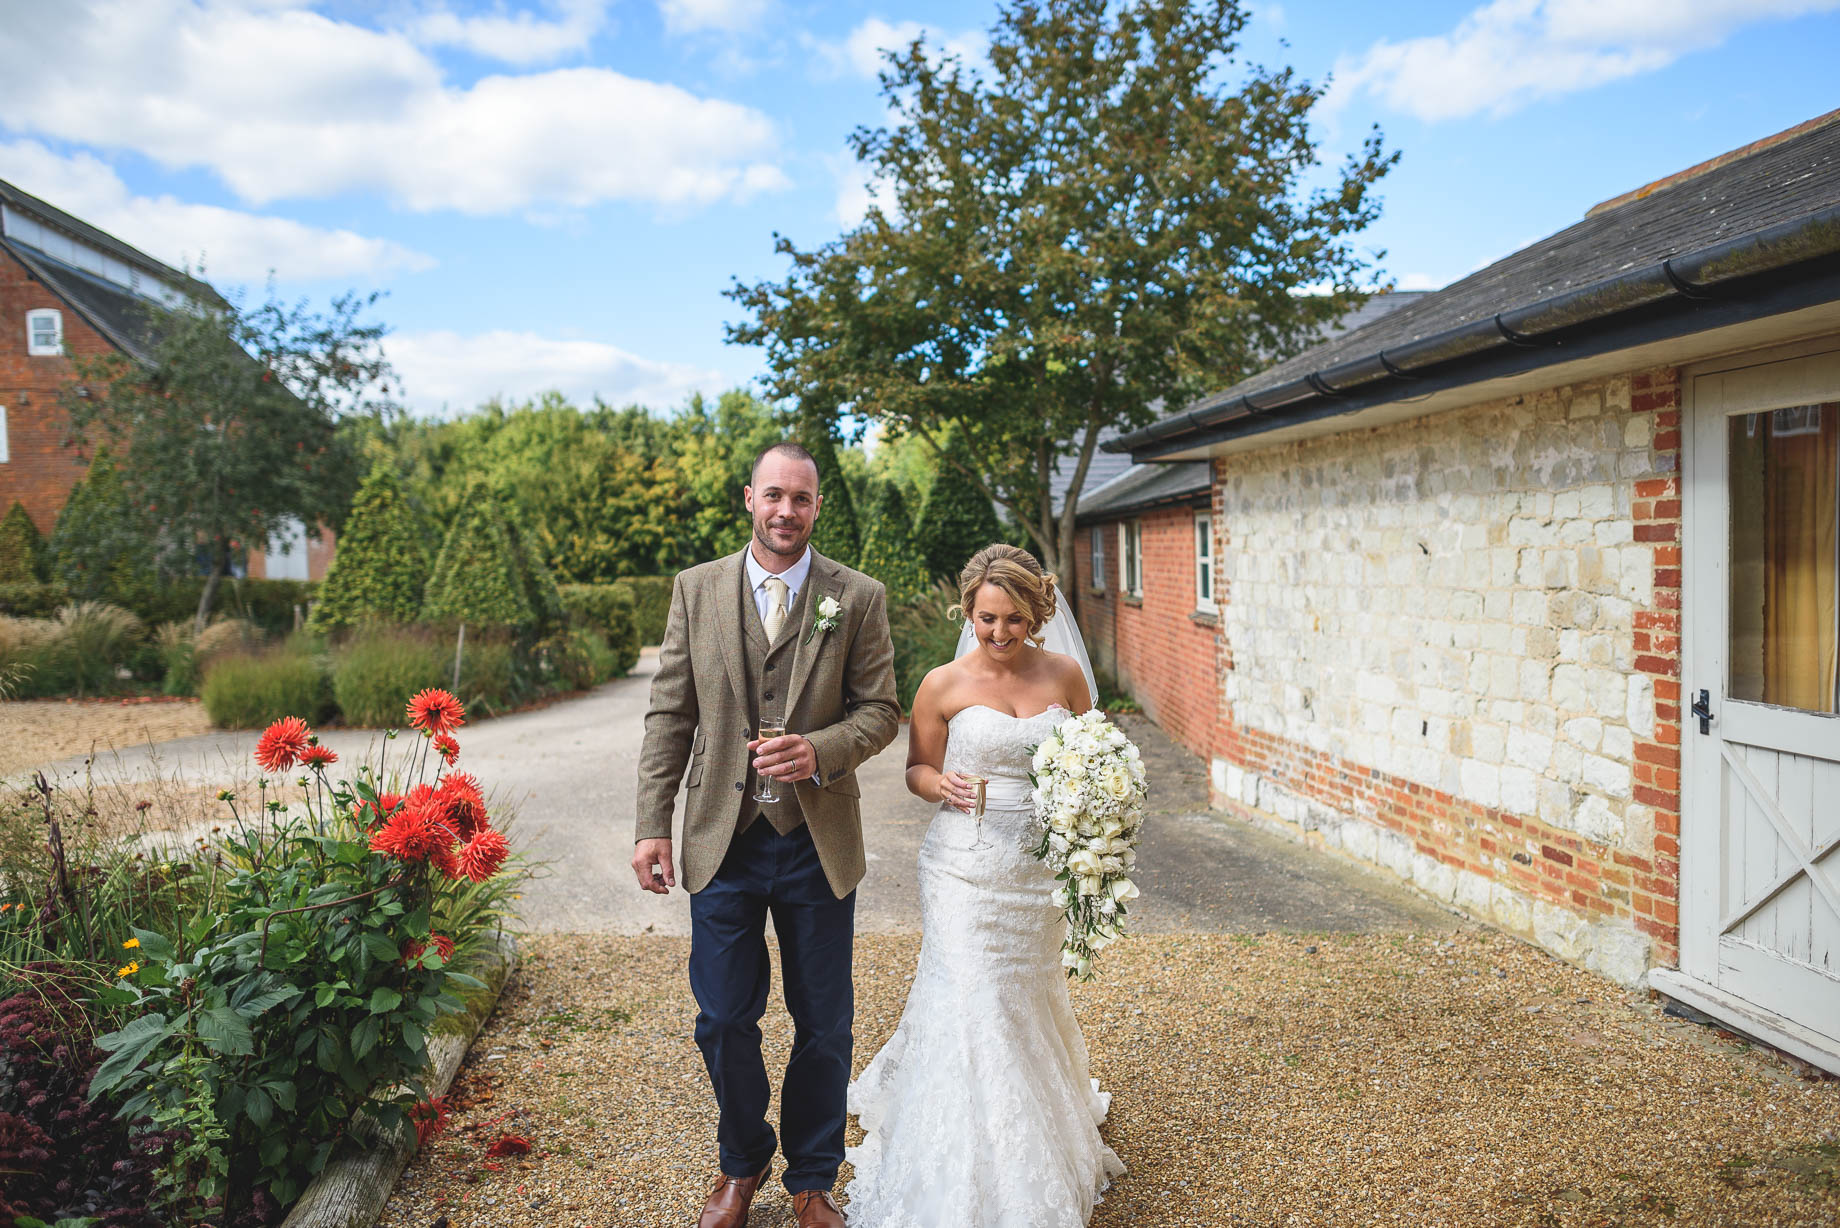 Bury Court Barn wedding photography - Guy Collier - Kate and Russ (81 of 187)